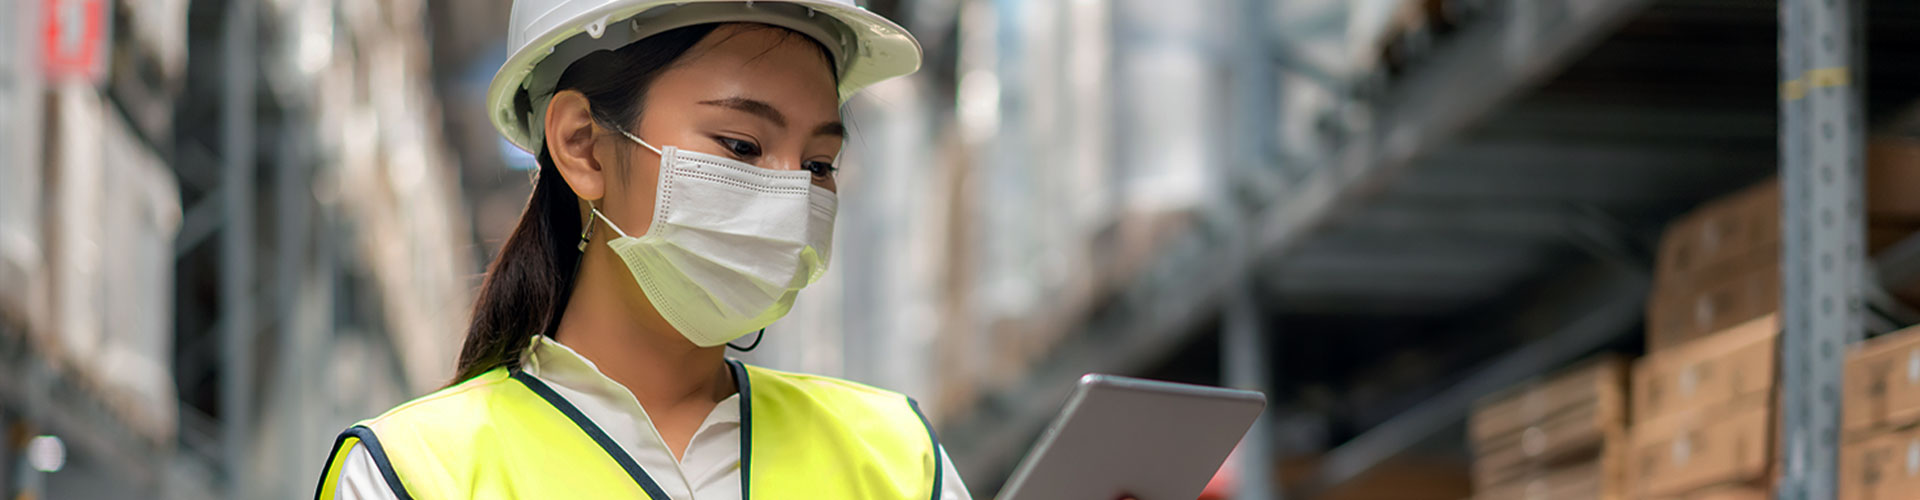 how to engage frontline workers